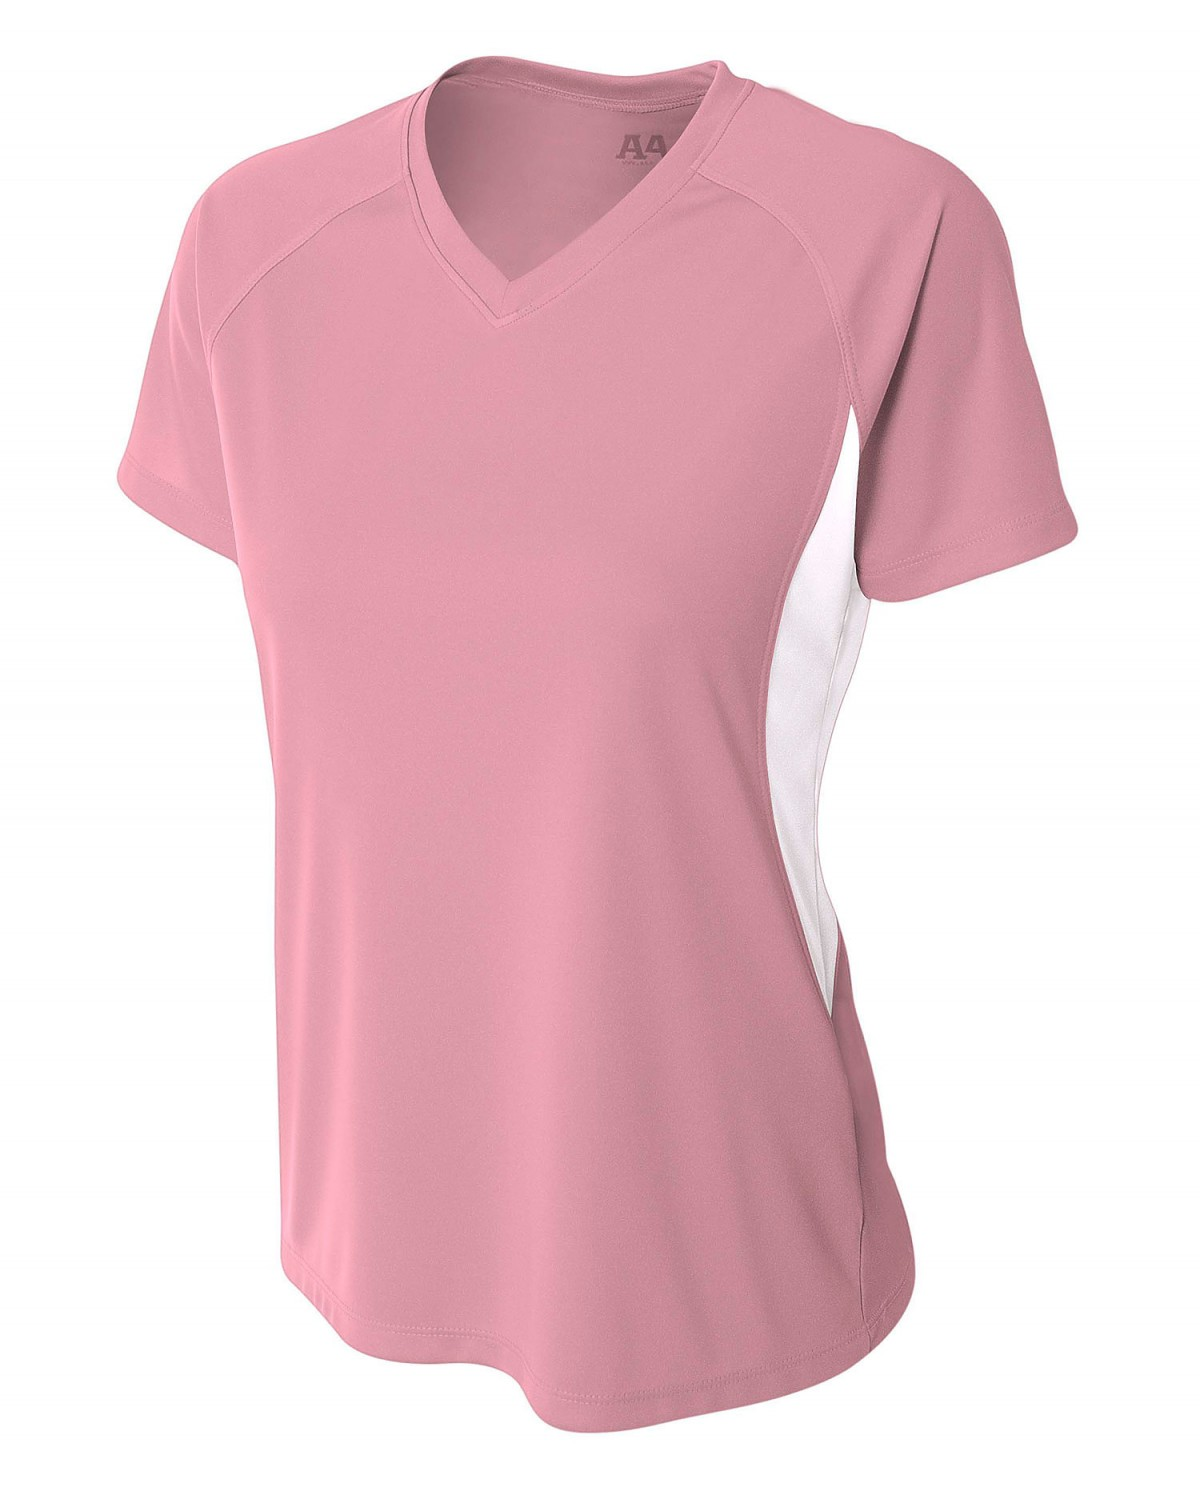 A4NW3223 A4 PINK/WHITE